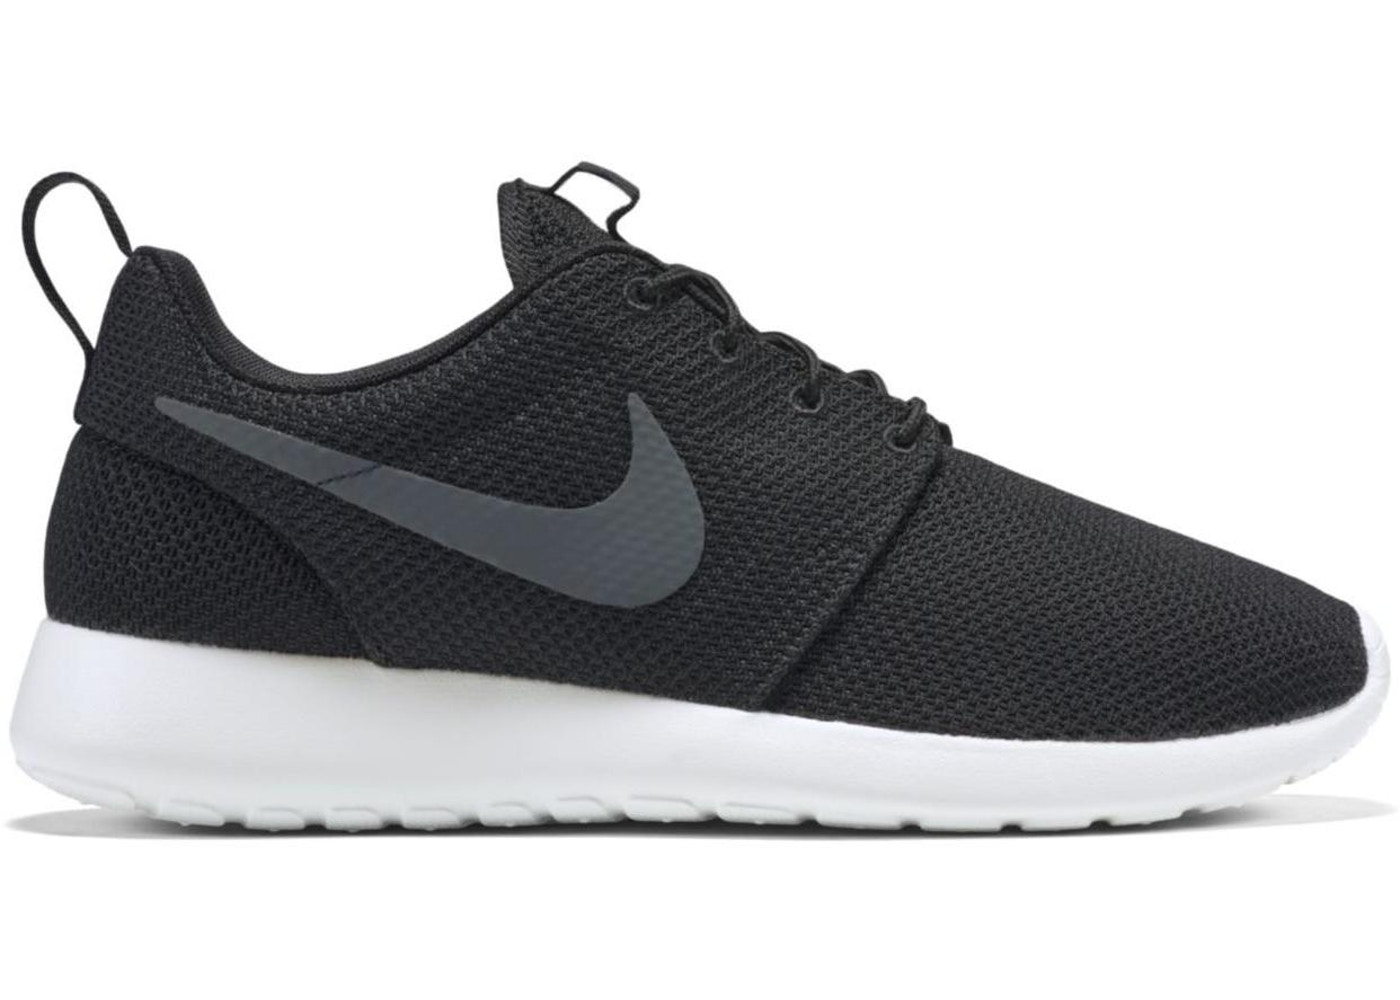 025a2e0bd40d4 Nike Roshe Run Black Anthracite Sail - 511881-010